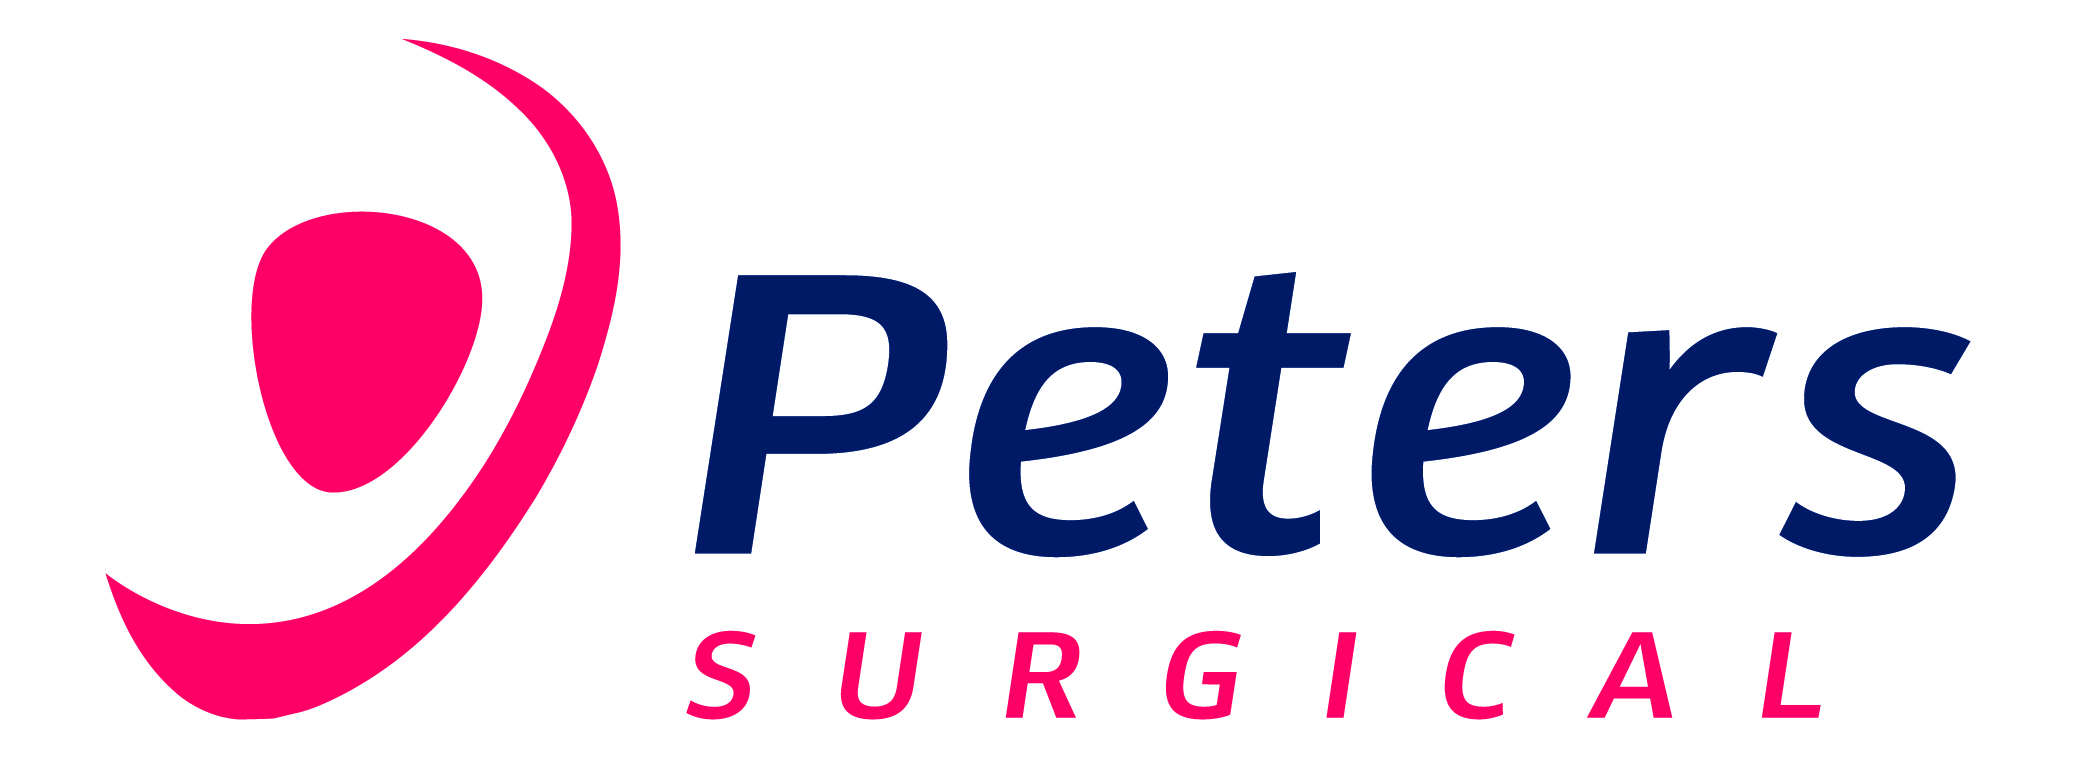 Peters Surgical Polska Sp. z o.o.